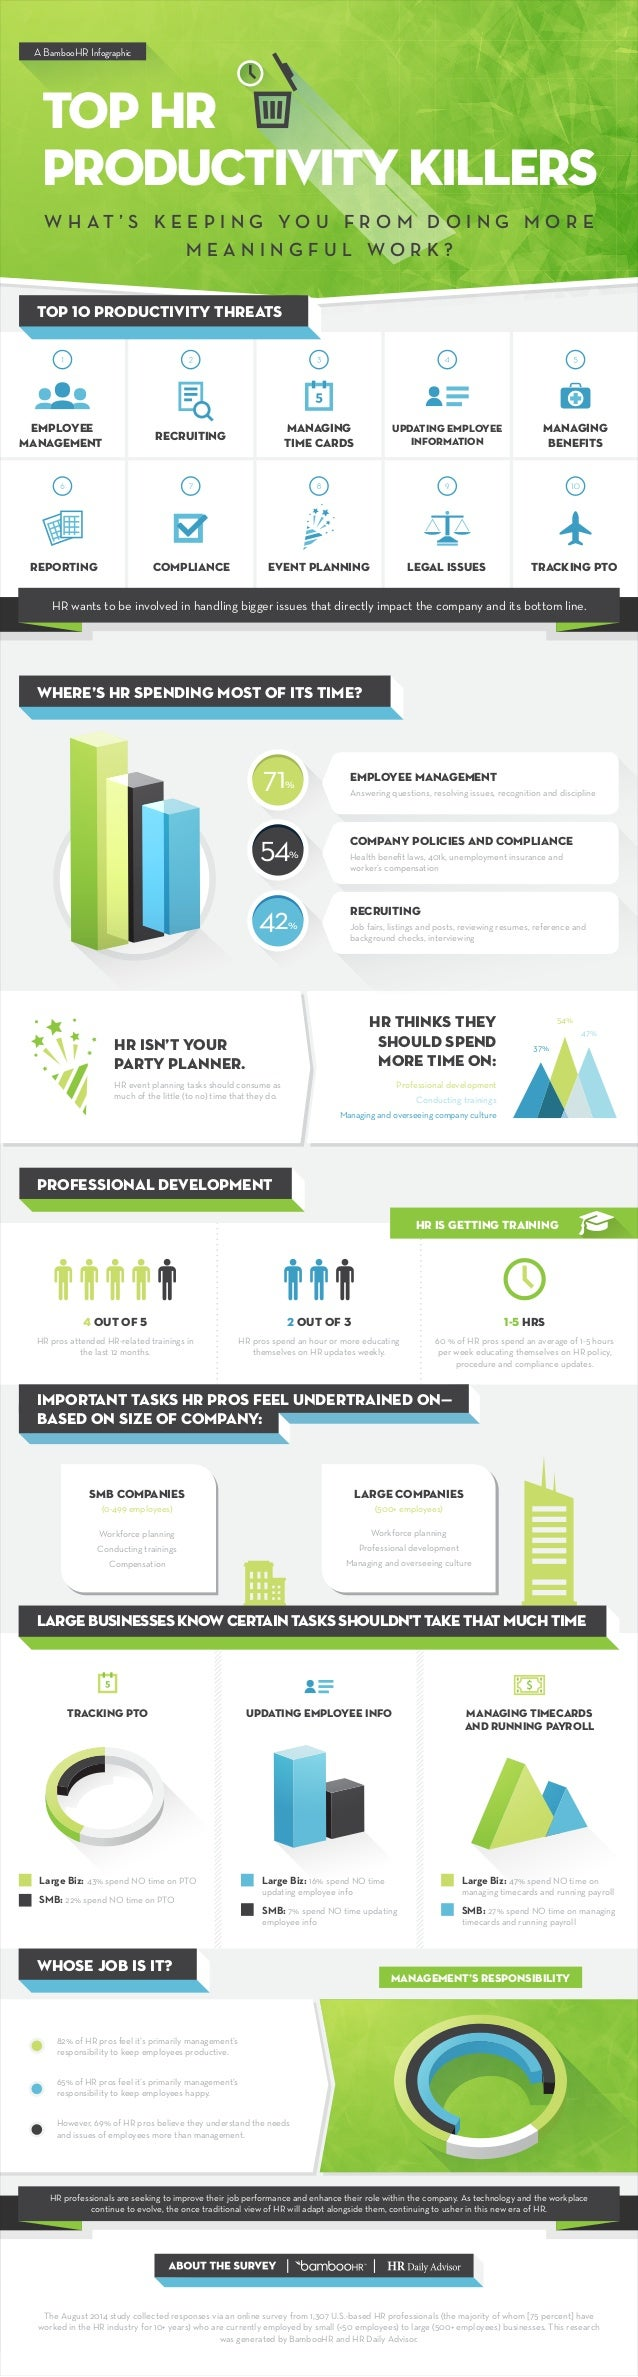 71% HR isn't your party planner. HR event planning tasks should consume as much of the little (to no) time that they do. H...